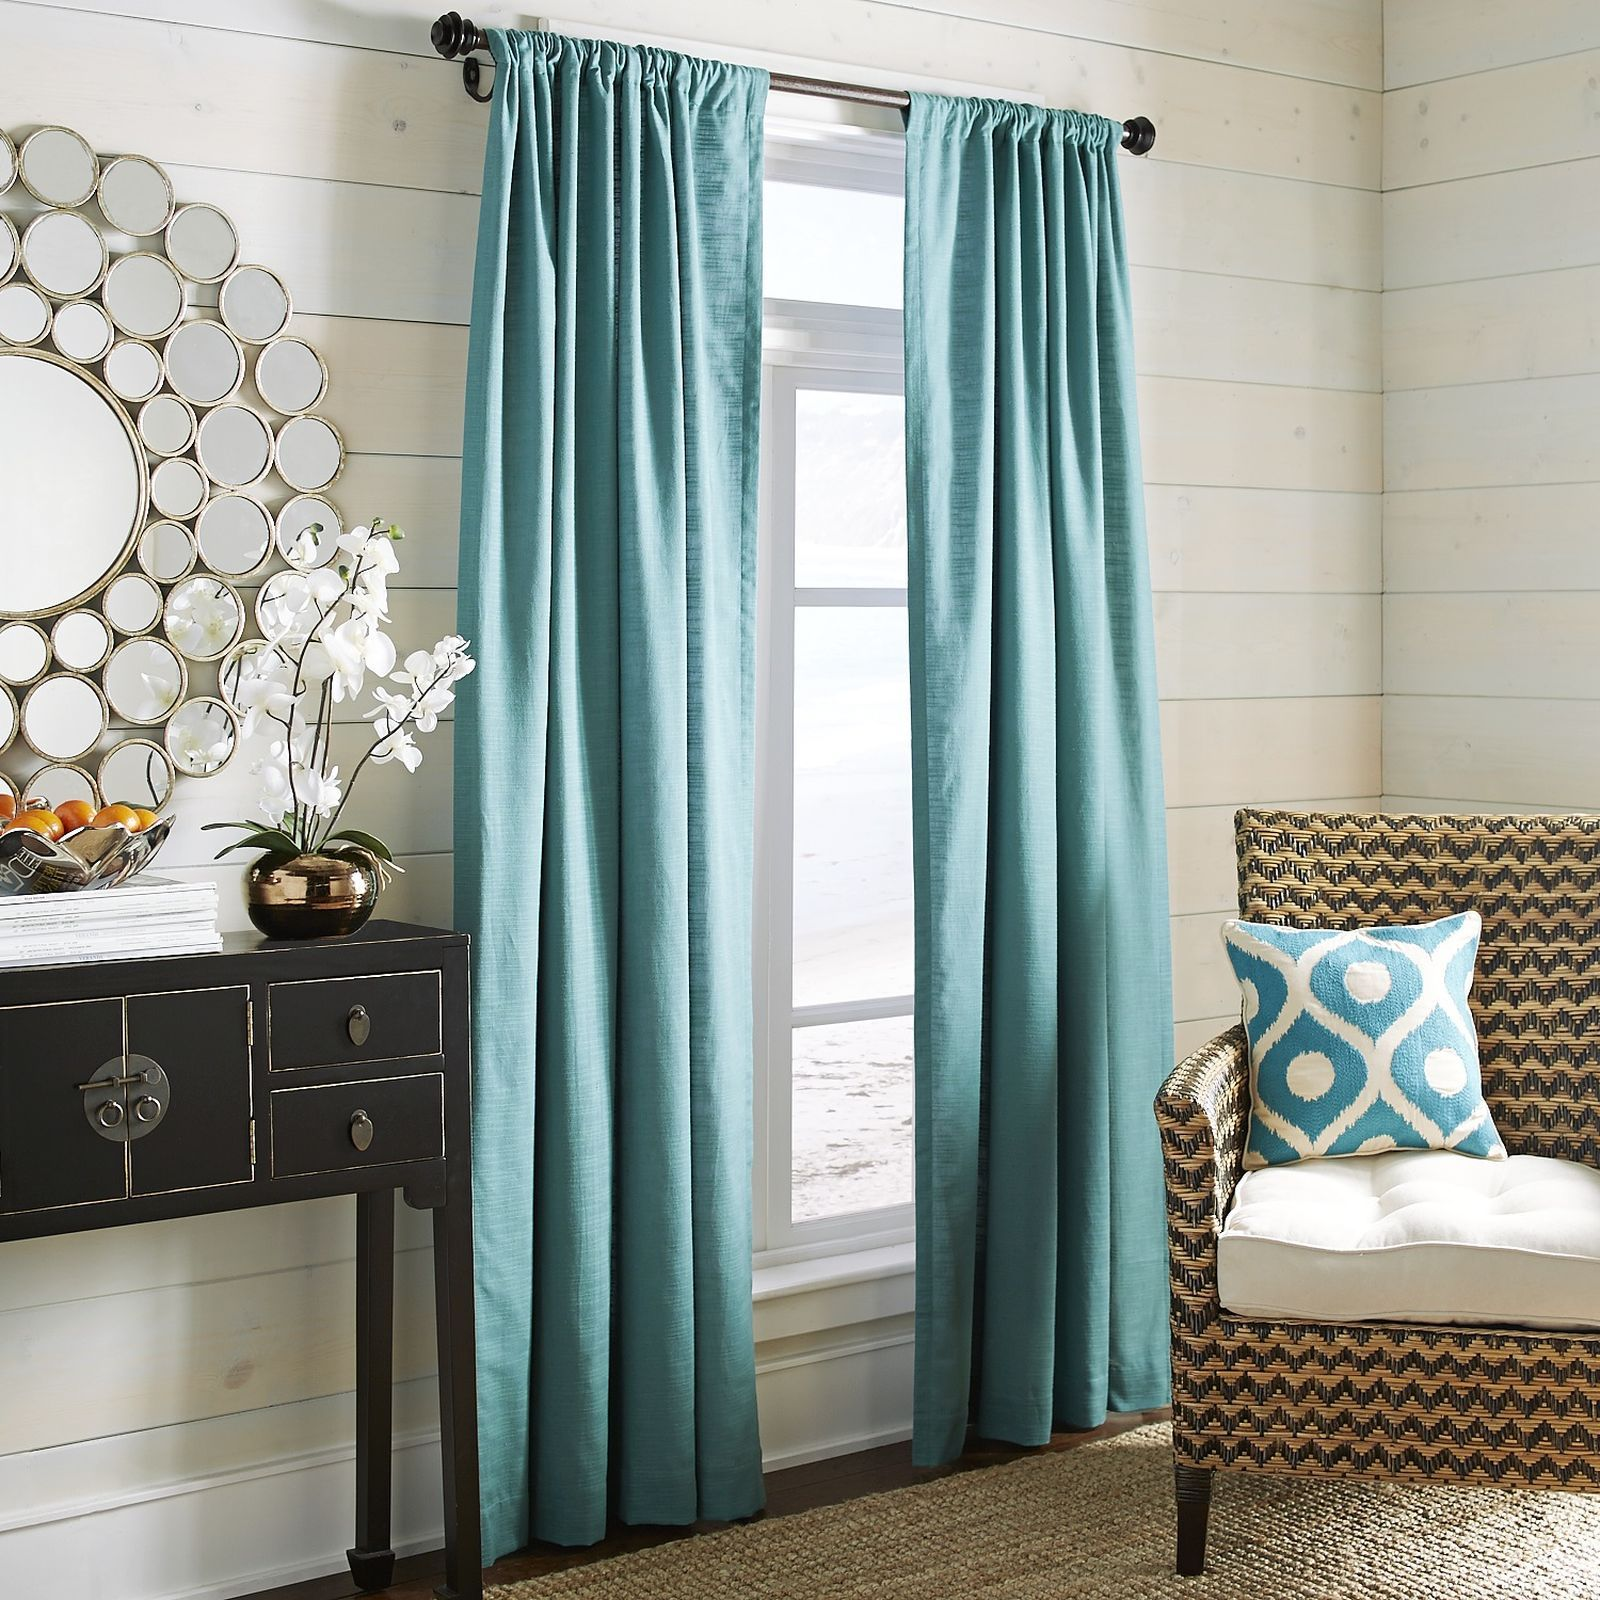 Whitley Curtain Teal Pier 1 Imports Decor Pinterest